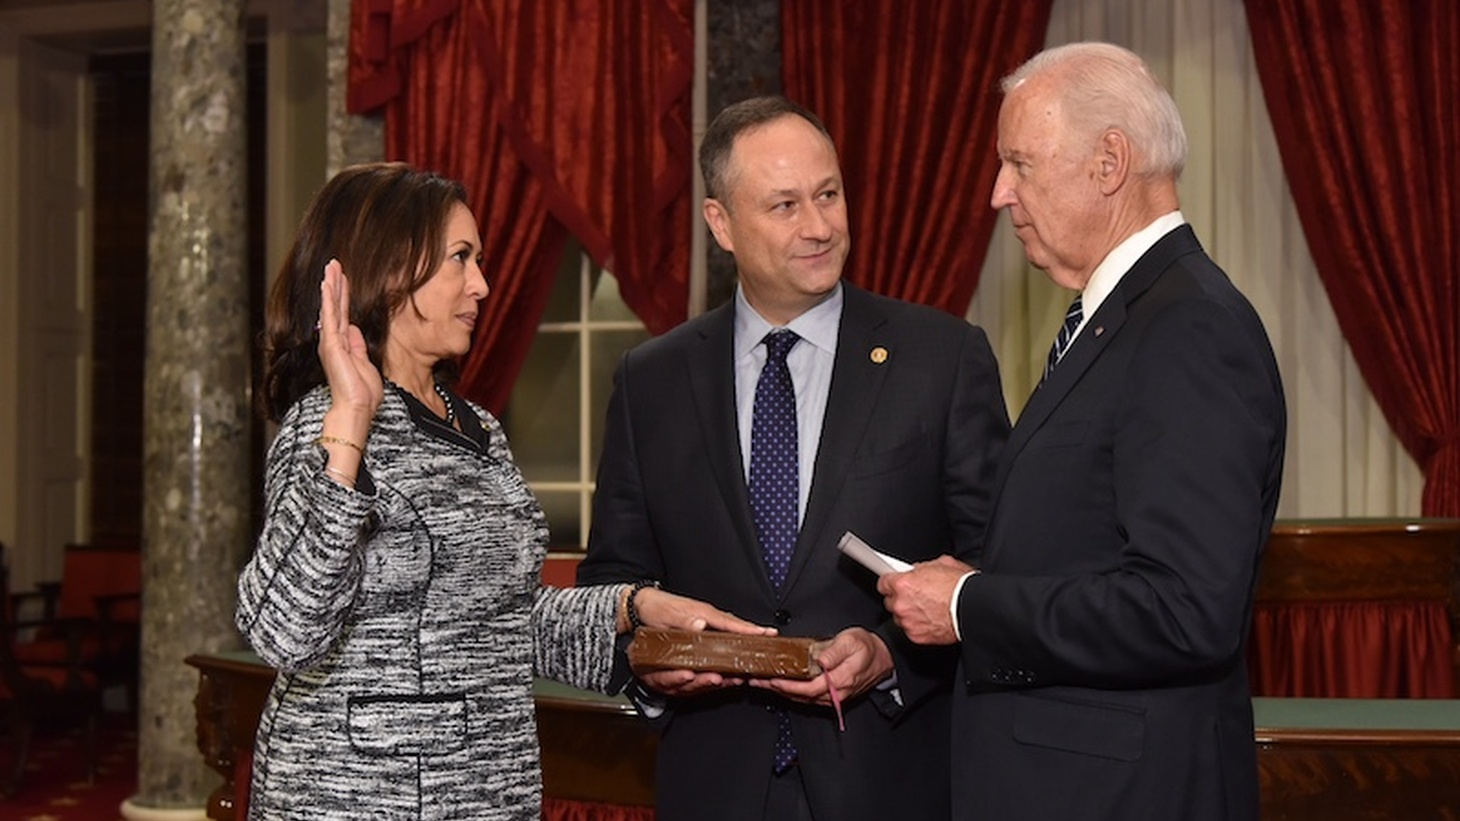 Kamala Harris Husband Is Leaving His Job Joe Biden S Wife Is Keeping Hers What It Says About Gender Roles